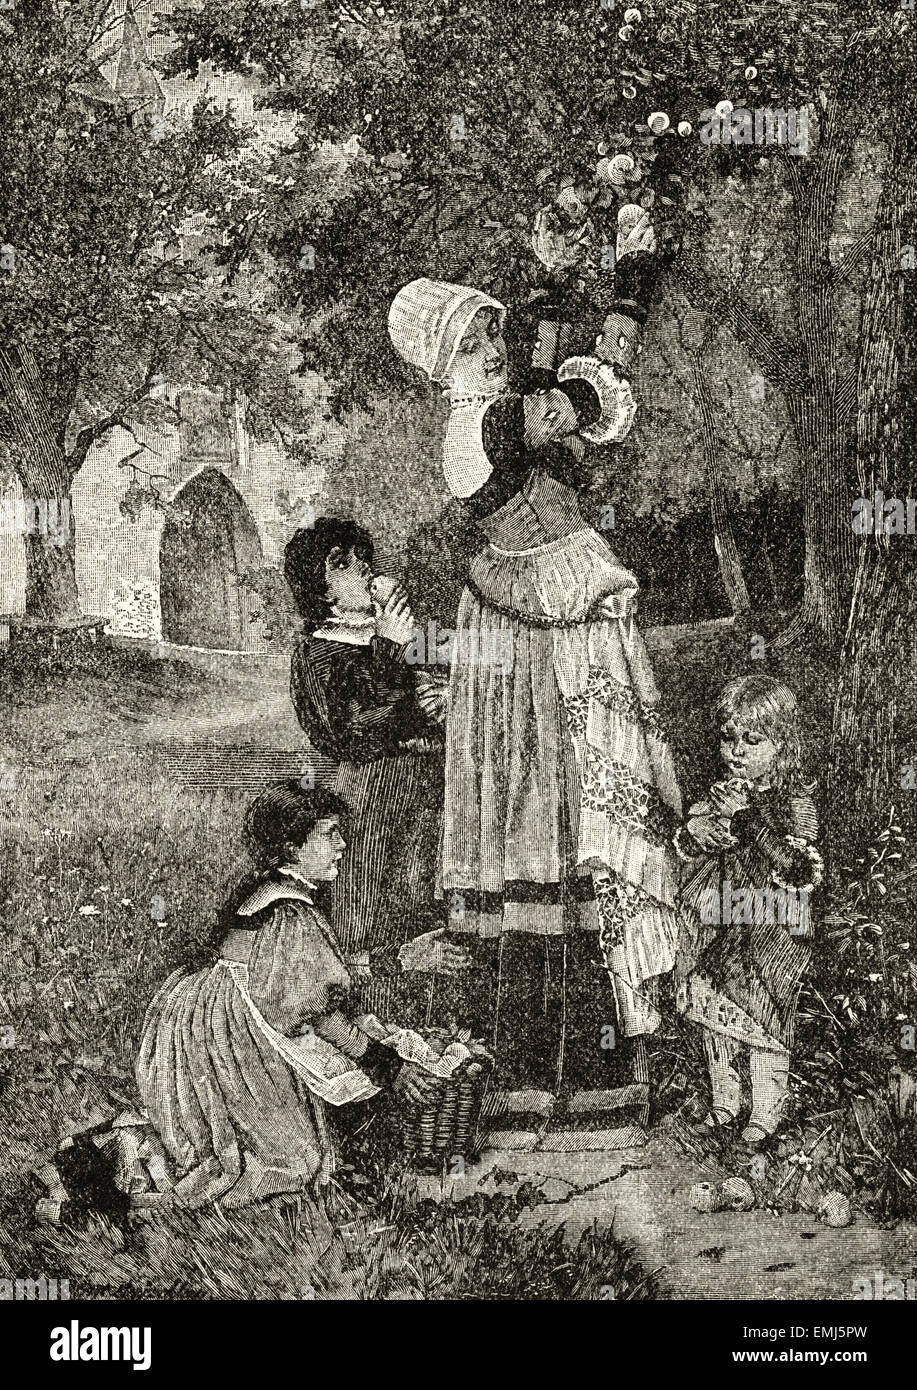 Mother & children picking apples. Victorian woodcut engraving dated 1890 - Stock Image